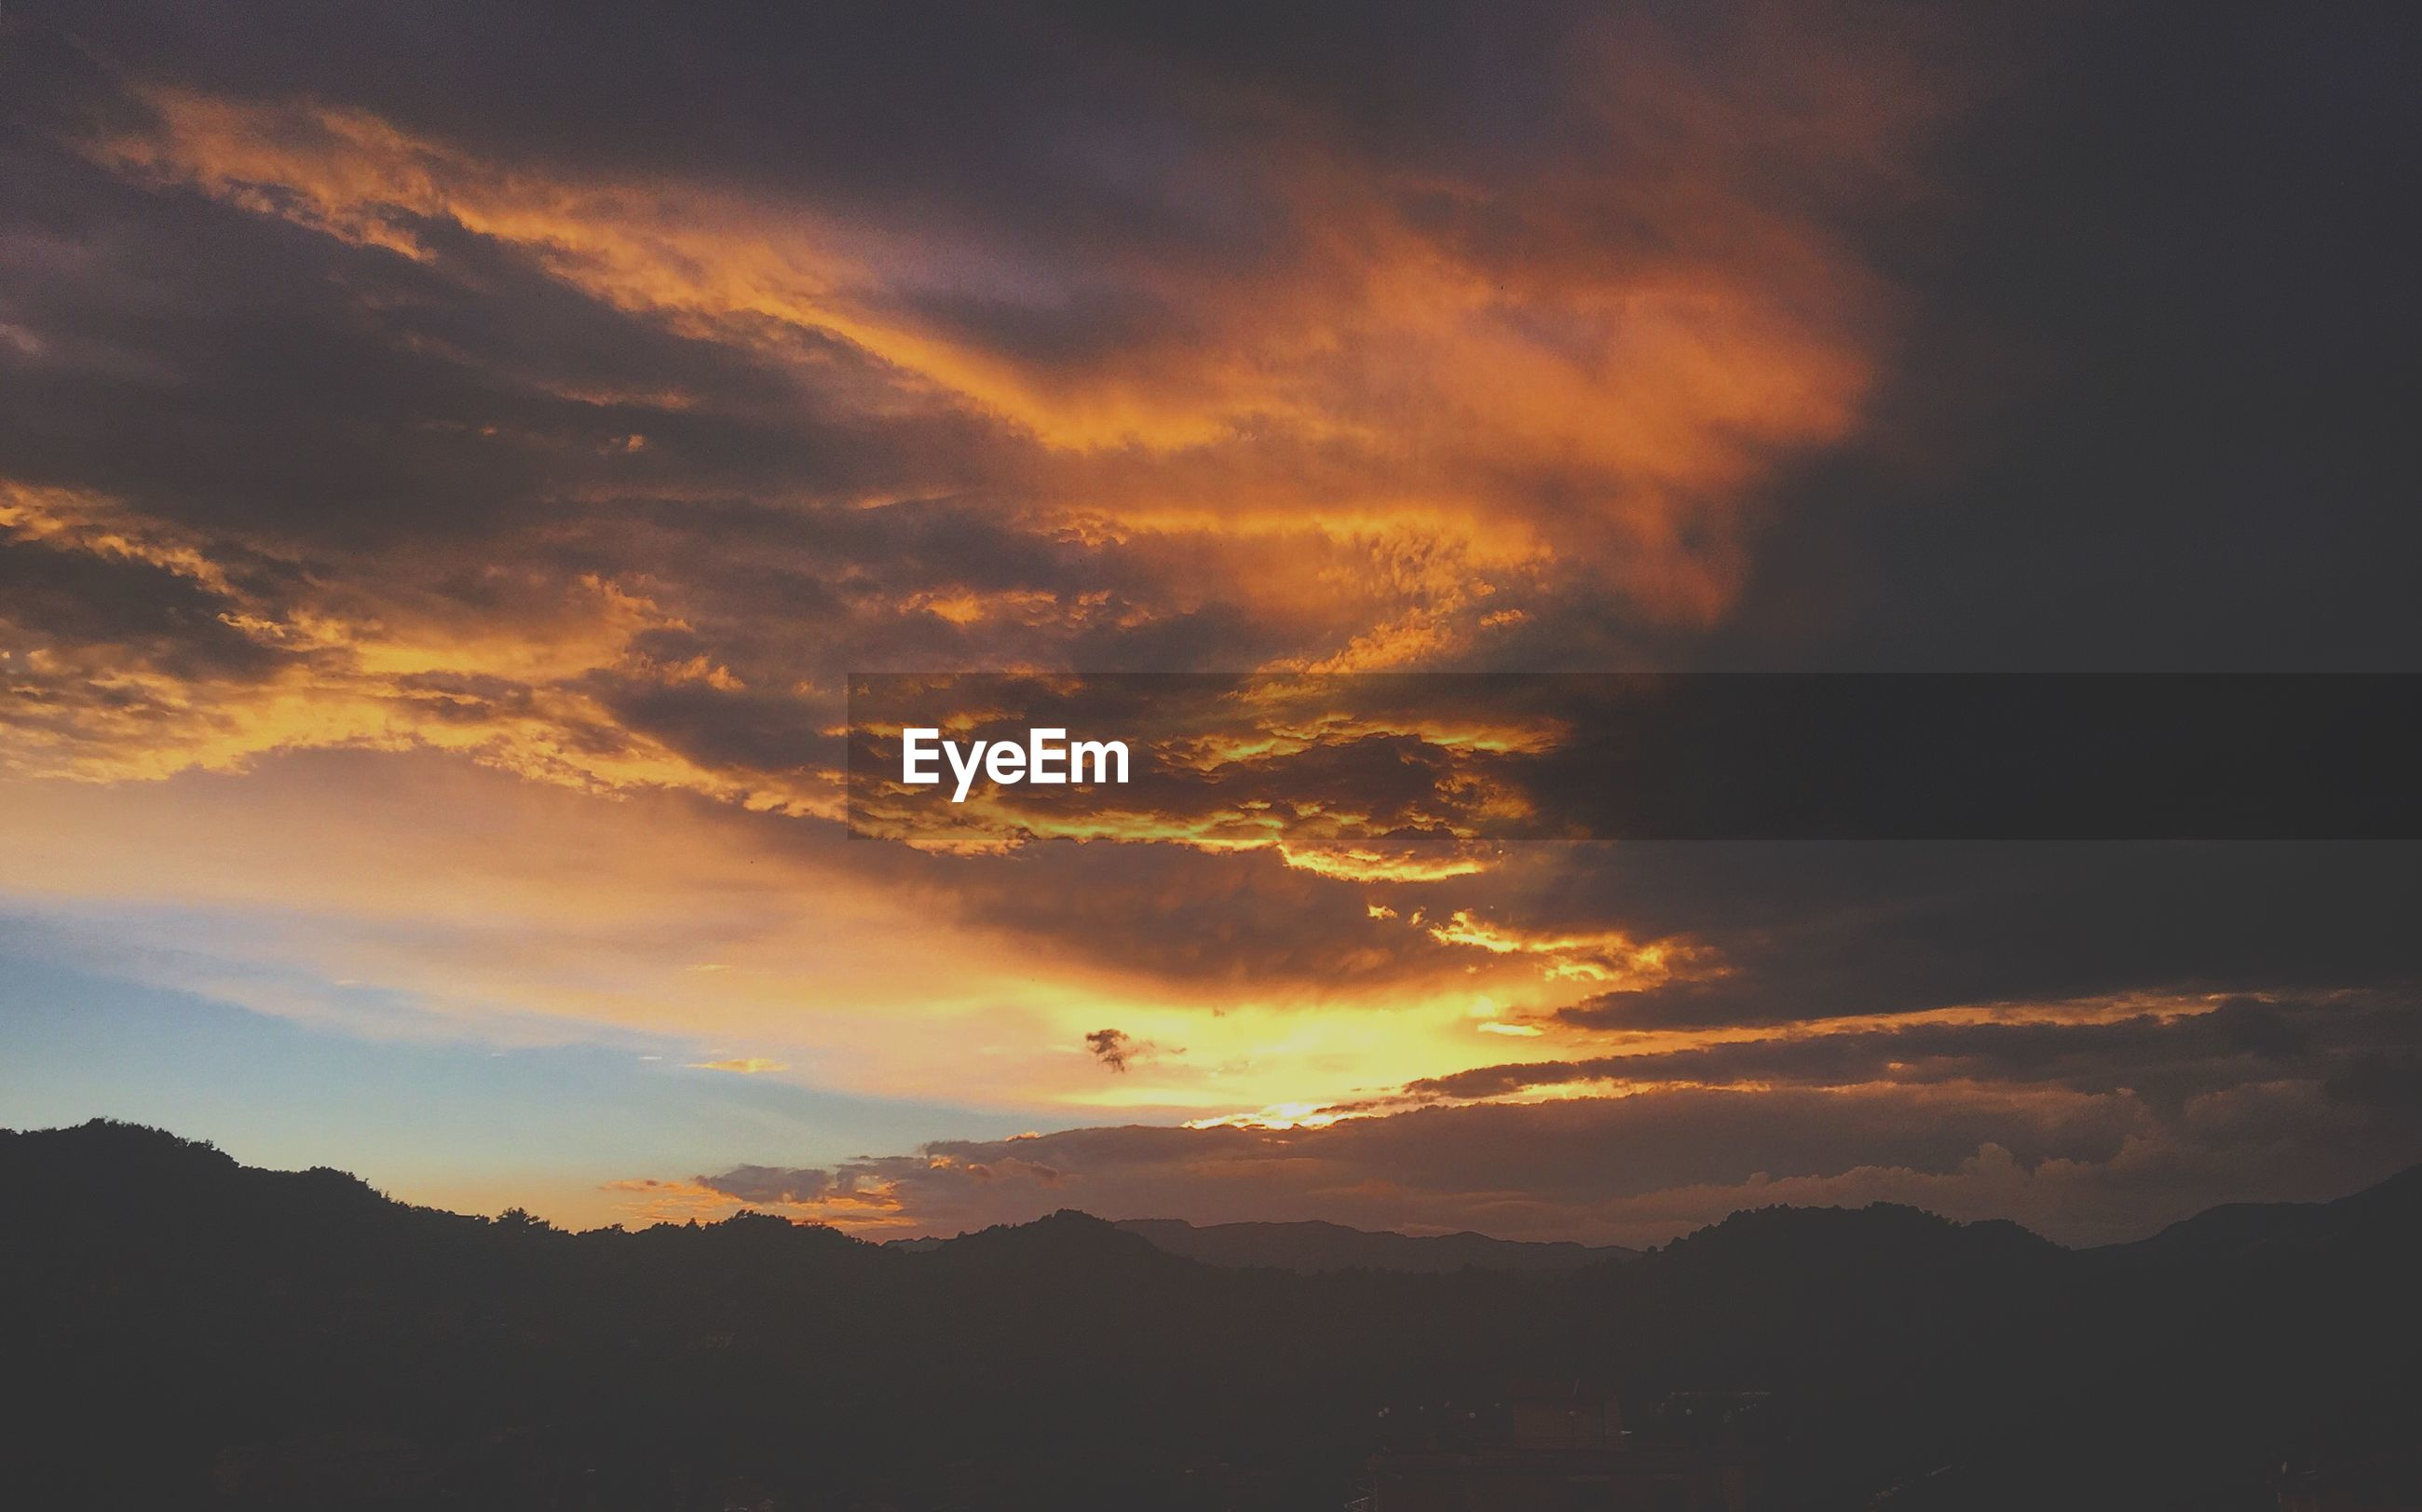 Scenic view of silhouette mountains against cloudy sky at sunset